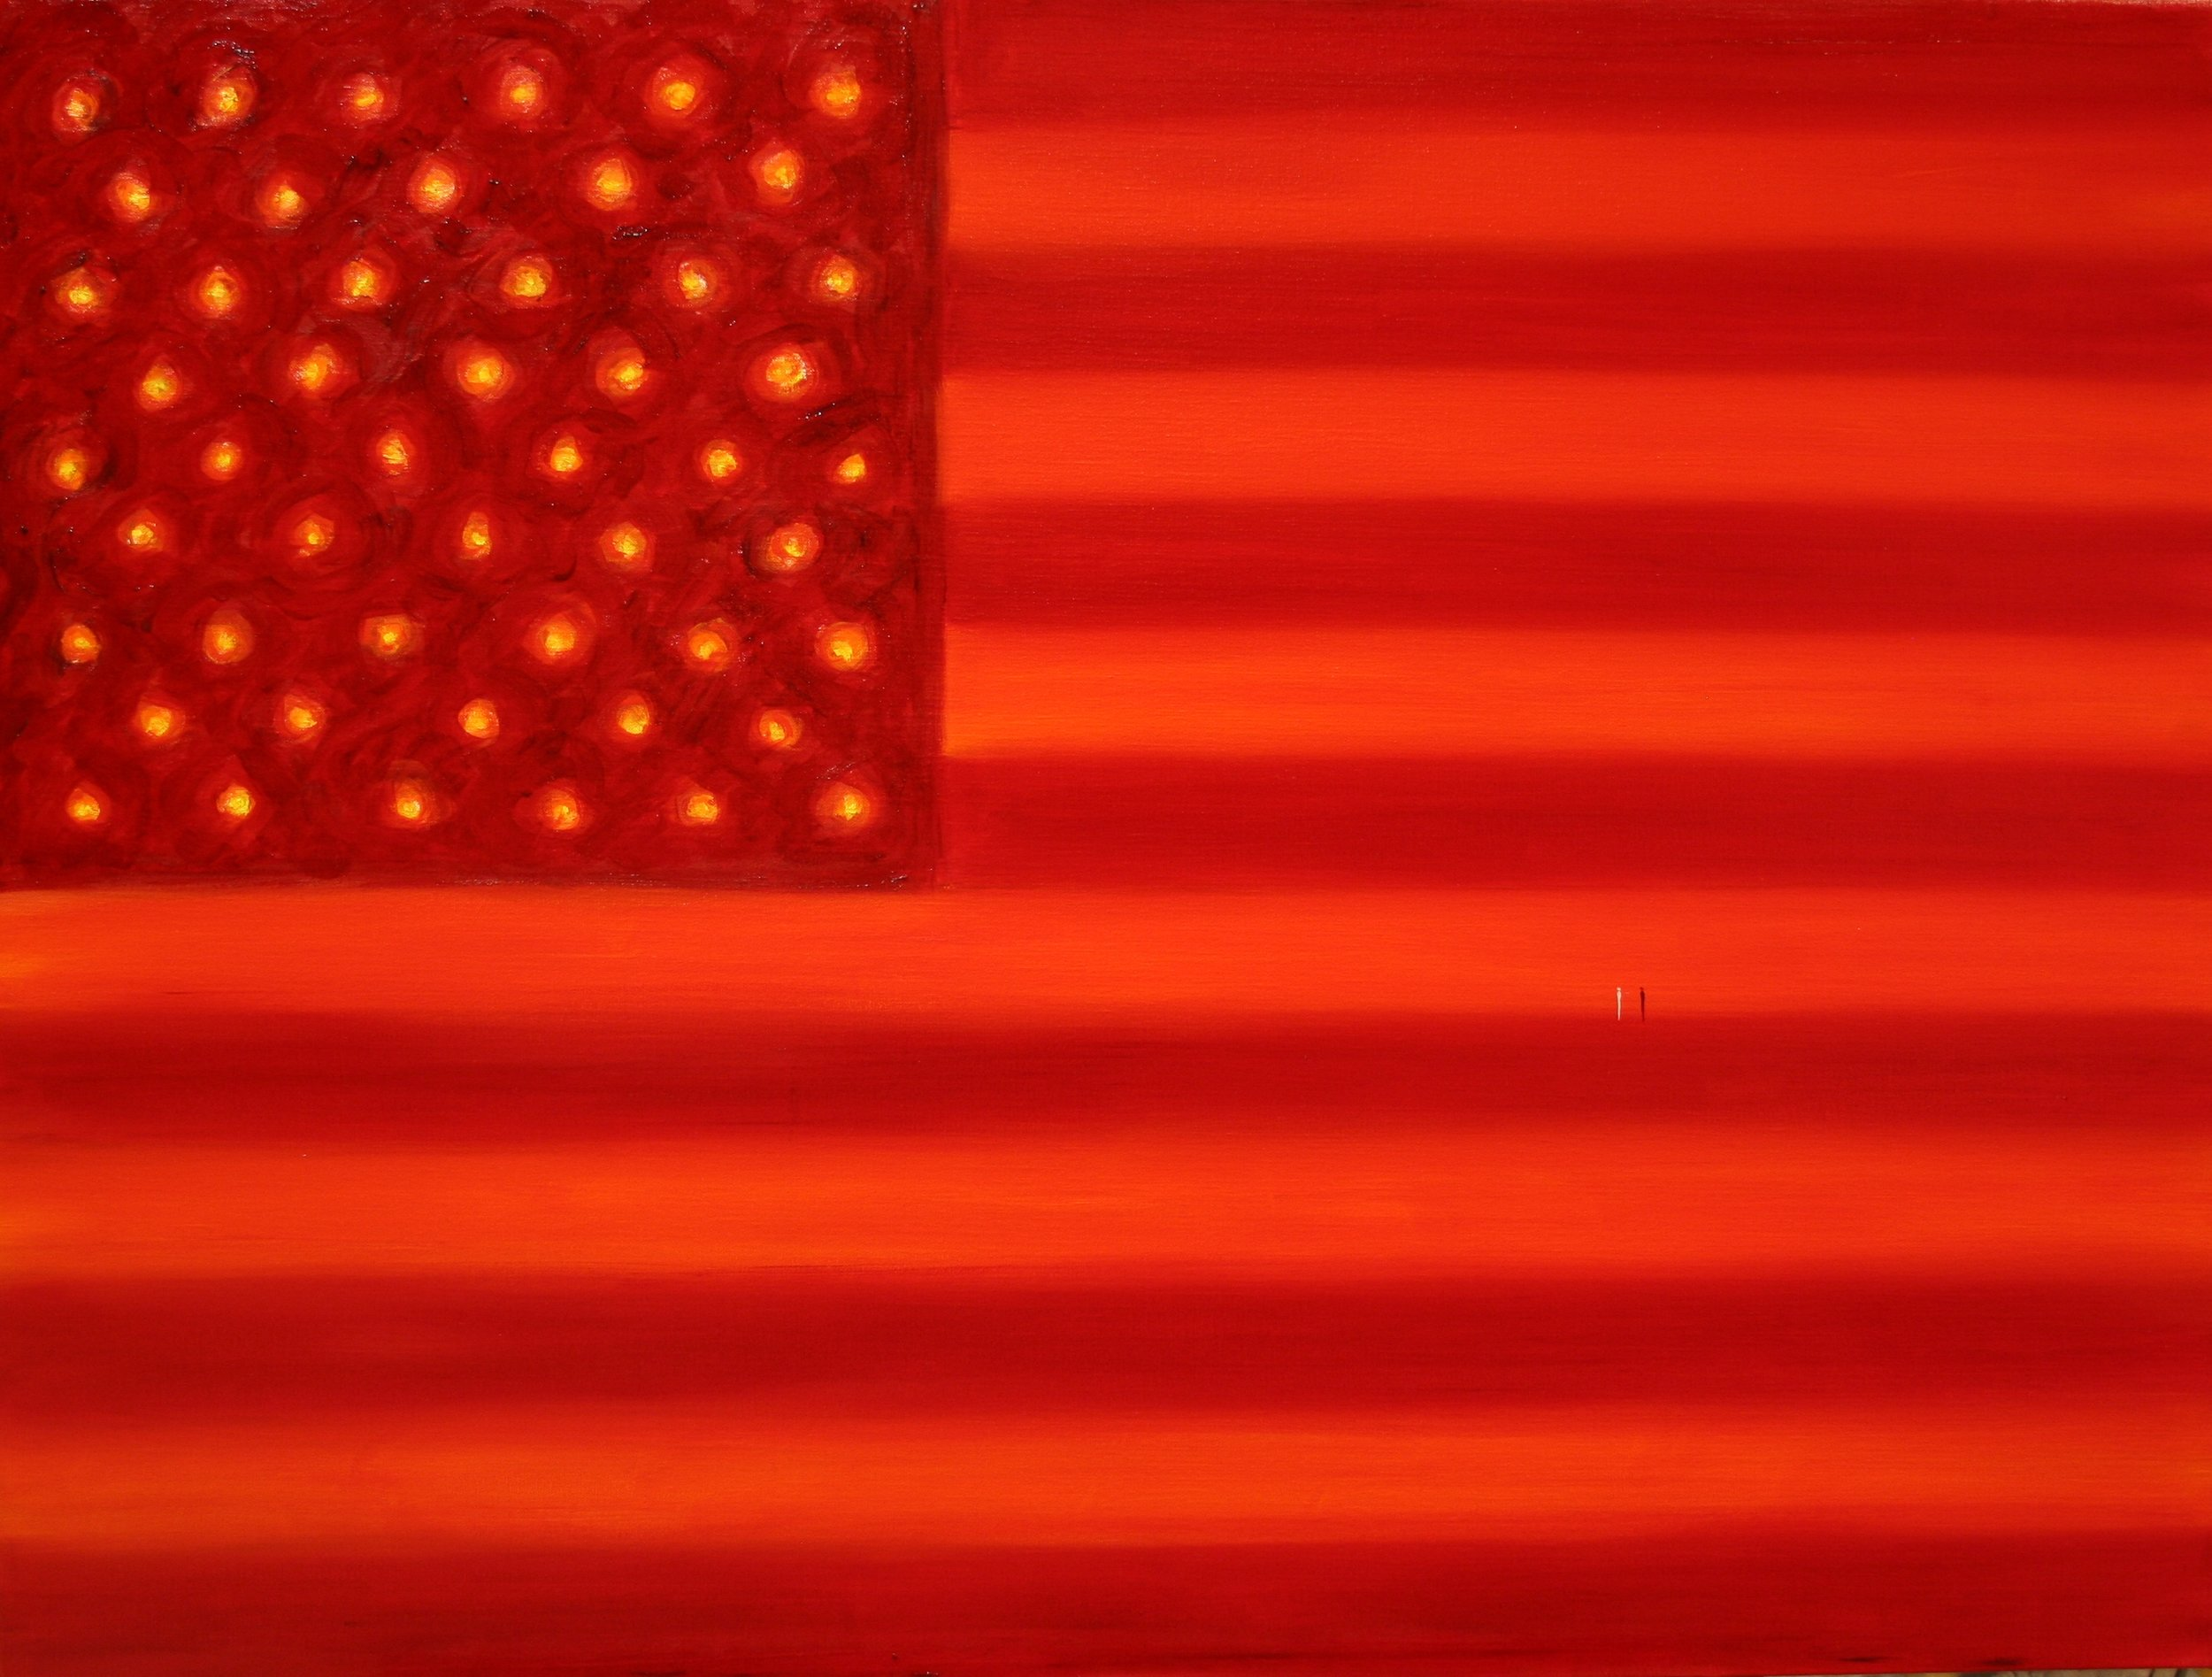 Red Flag 75x100cm.JPG